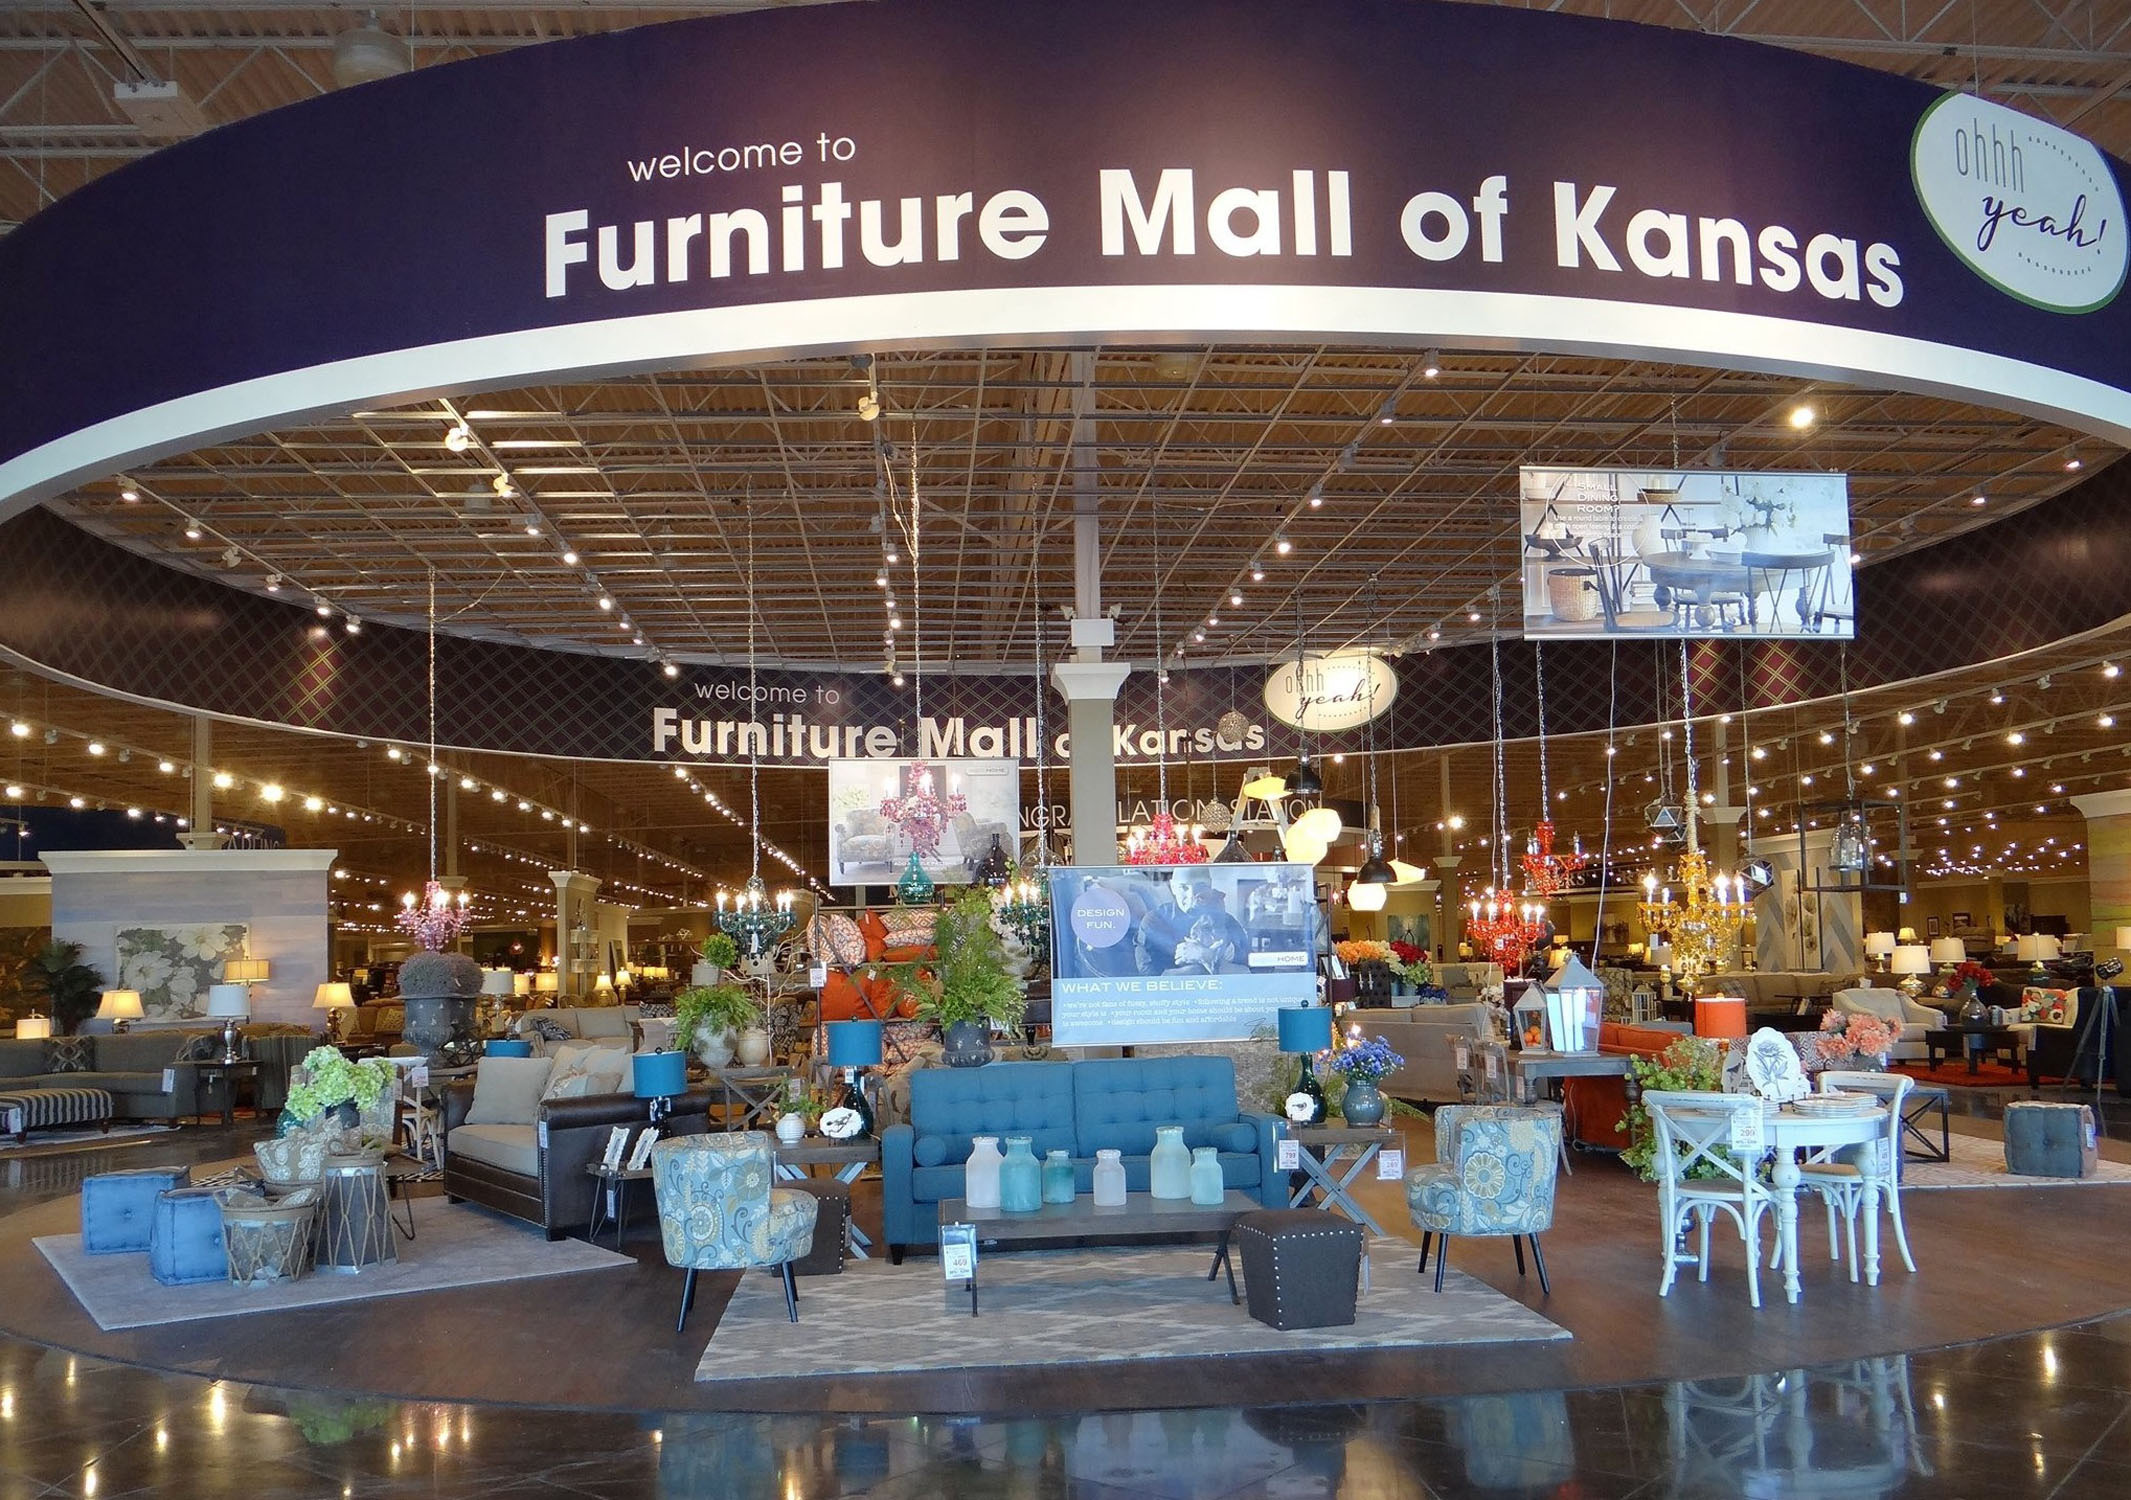 The Furniture Mall Furniture Mall Of Kansas The Dreams You Dare To Dream